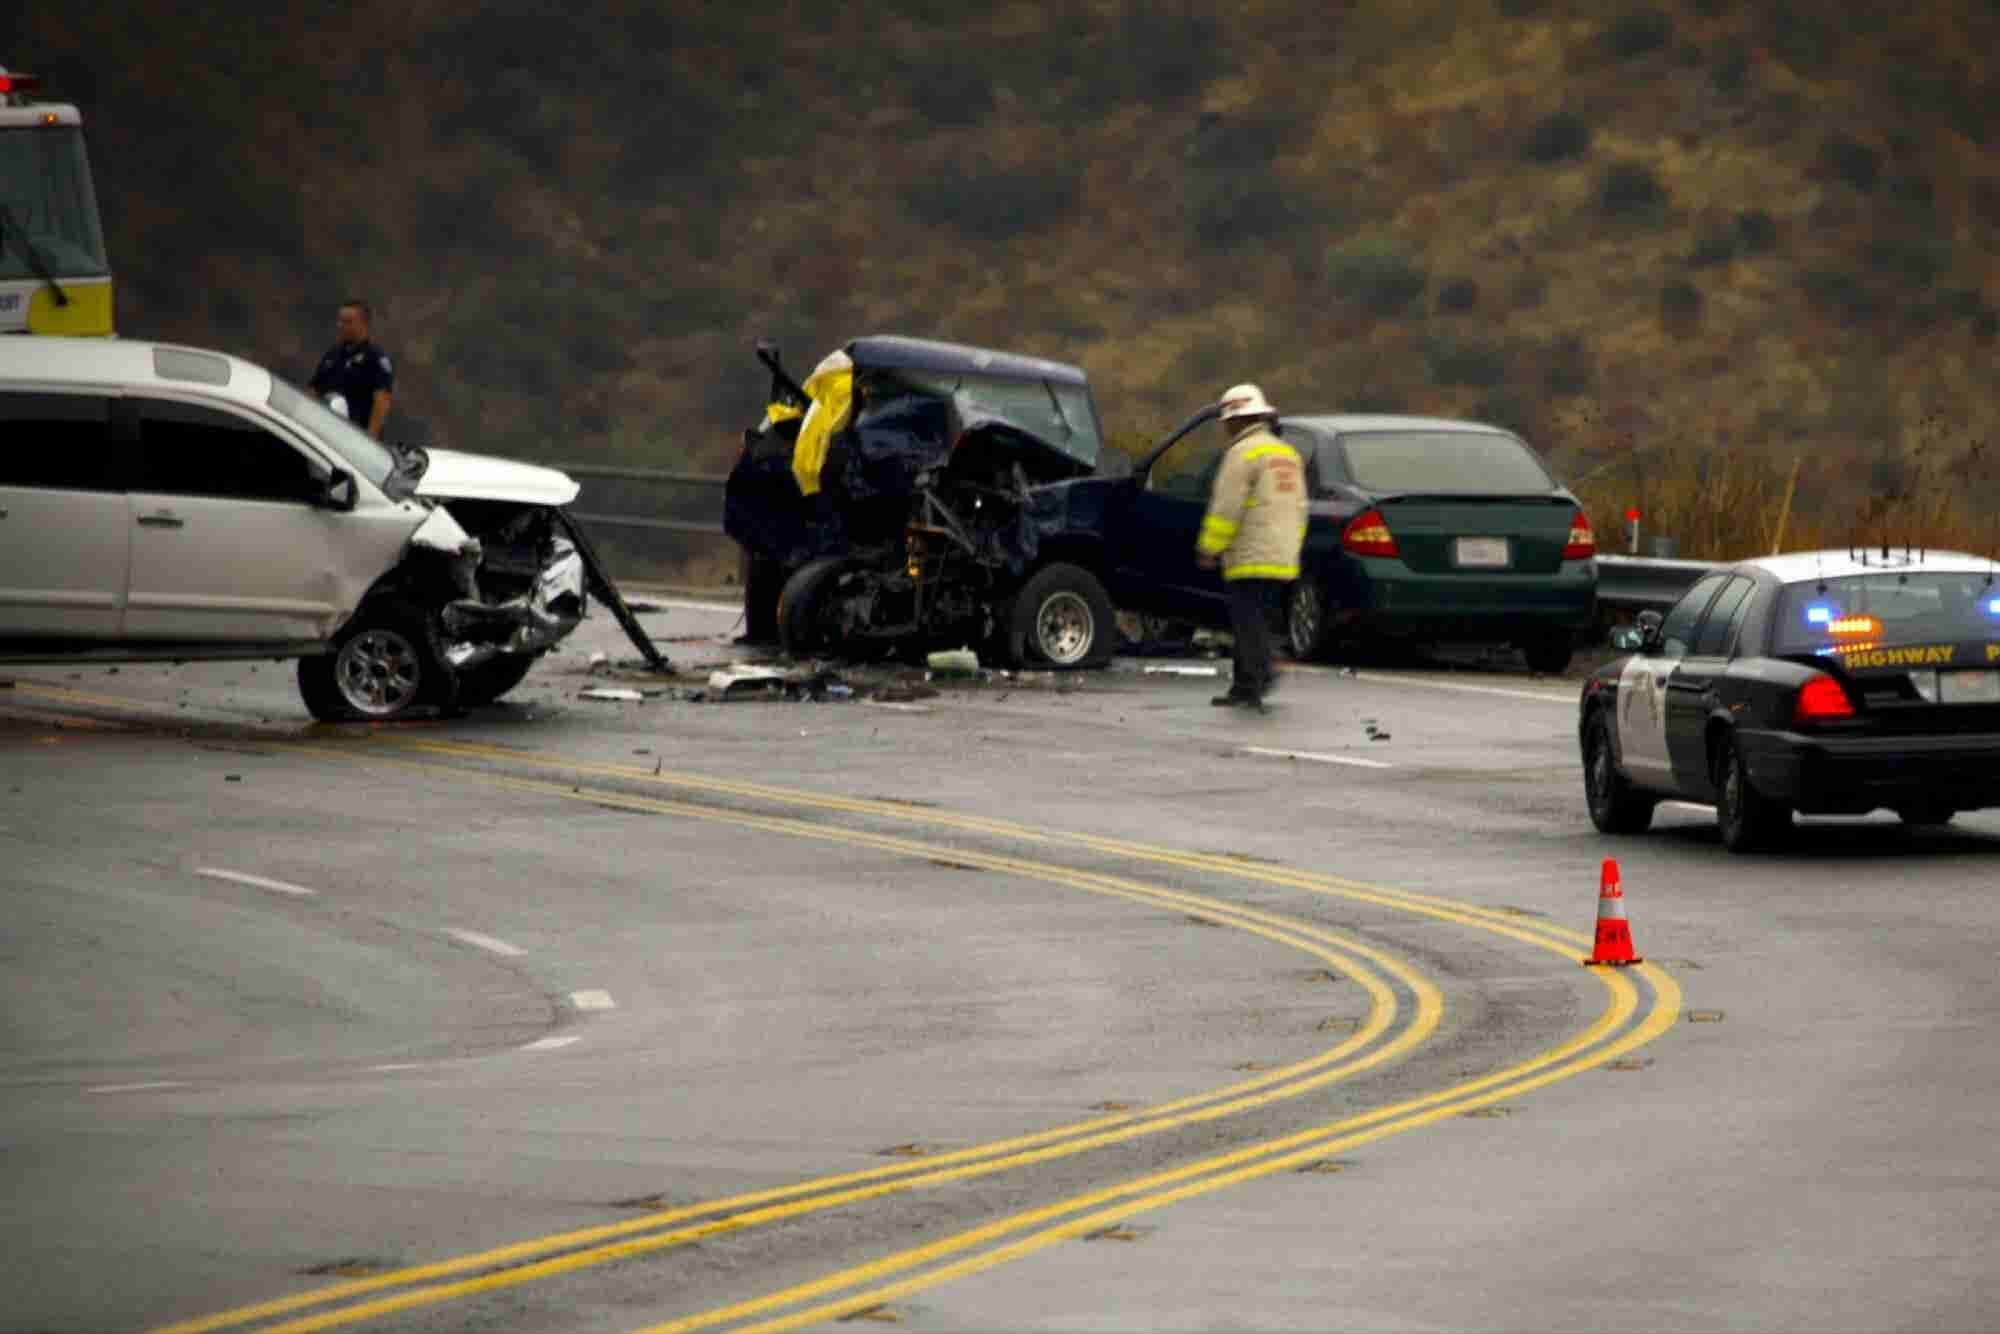 Study Links Medical Marijuana to Fewer Traffic Fatalities